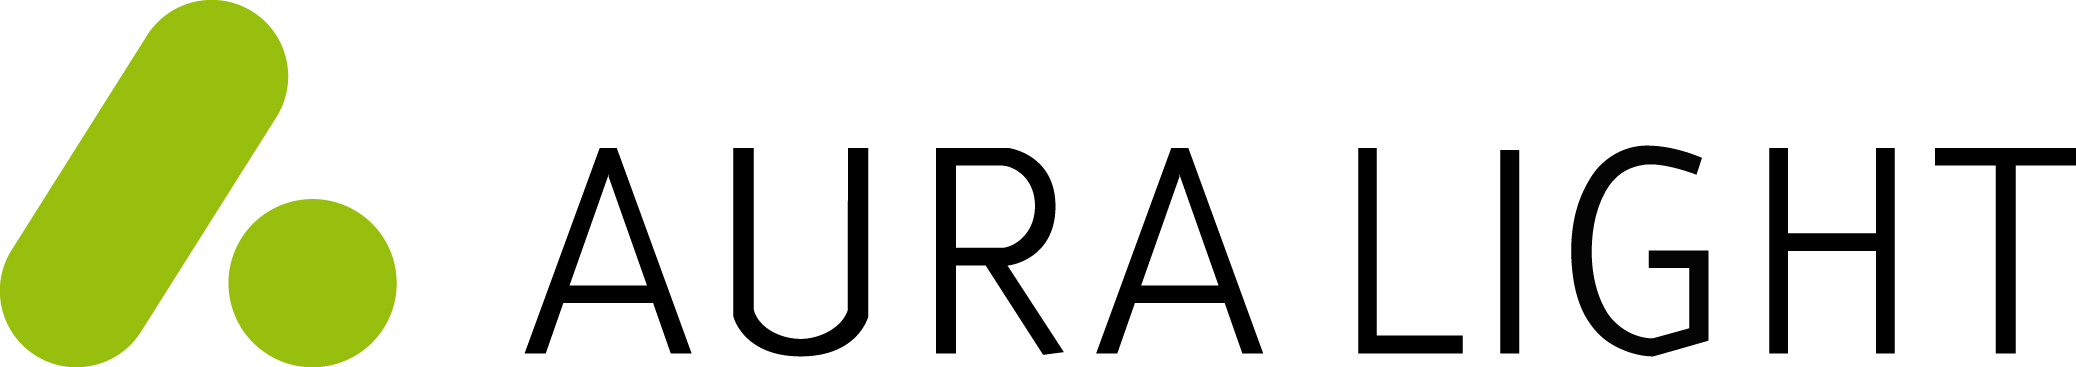 AURA LIGHT_Logotype_PMS376